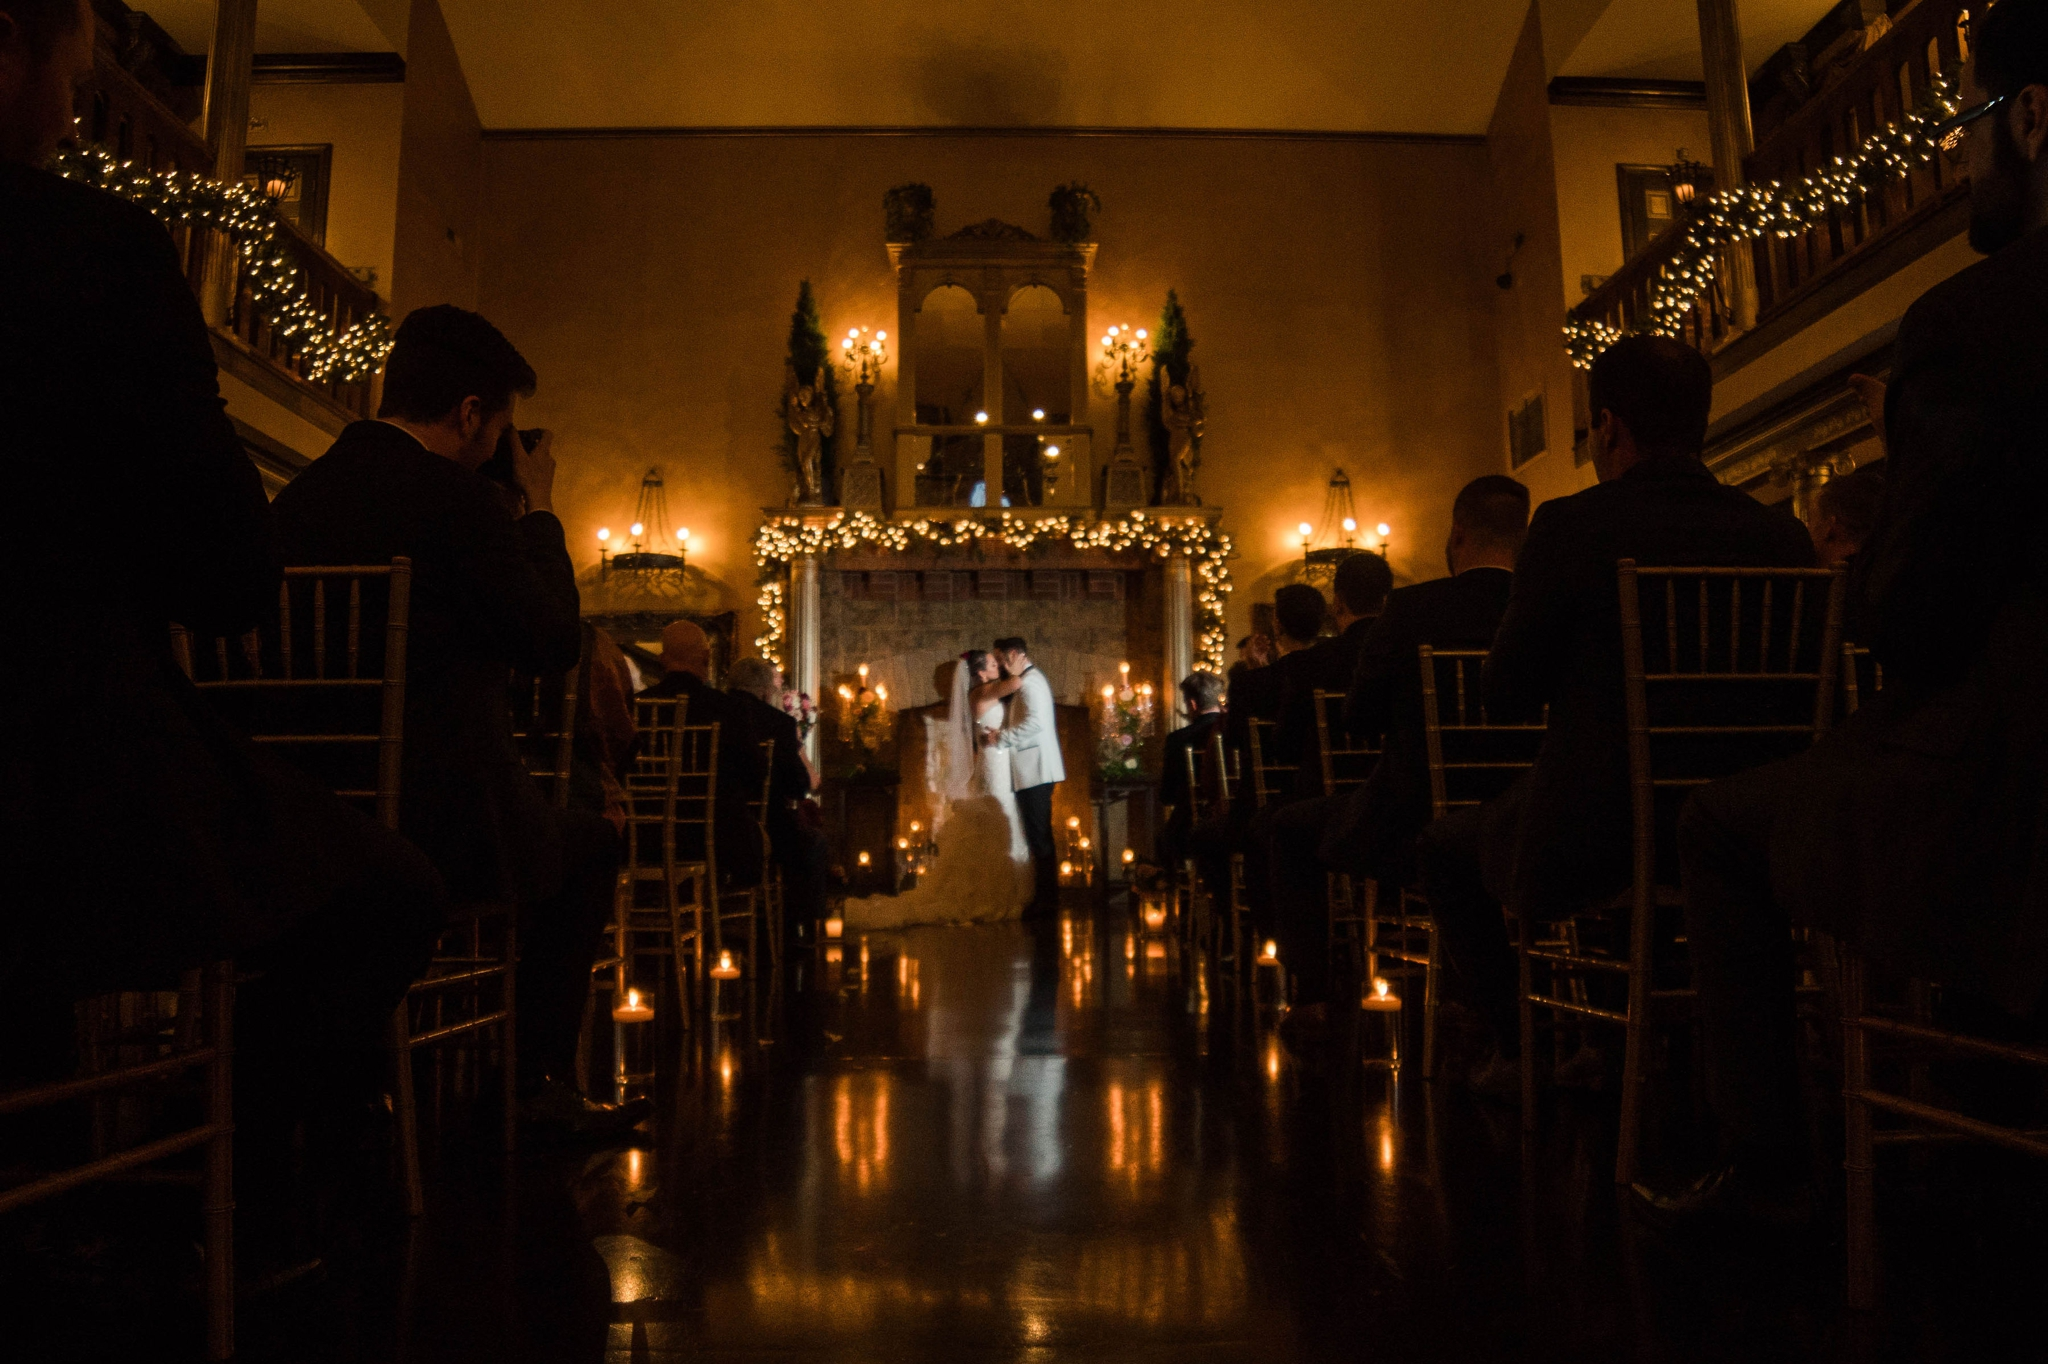 First kiss in a castle lit by candles during the wedding ceremony - Honolulu Oahu Hawaii Wedding Photographer